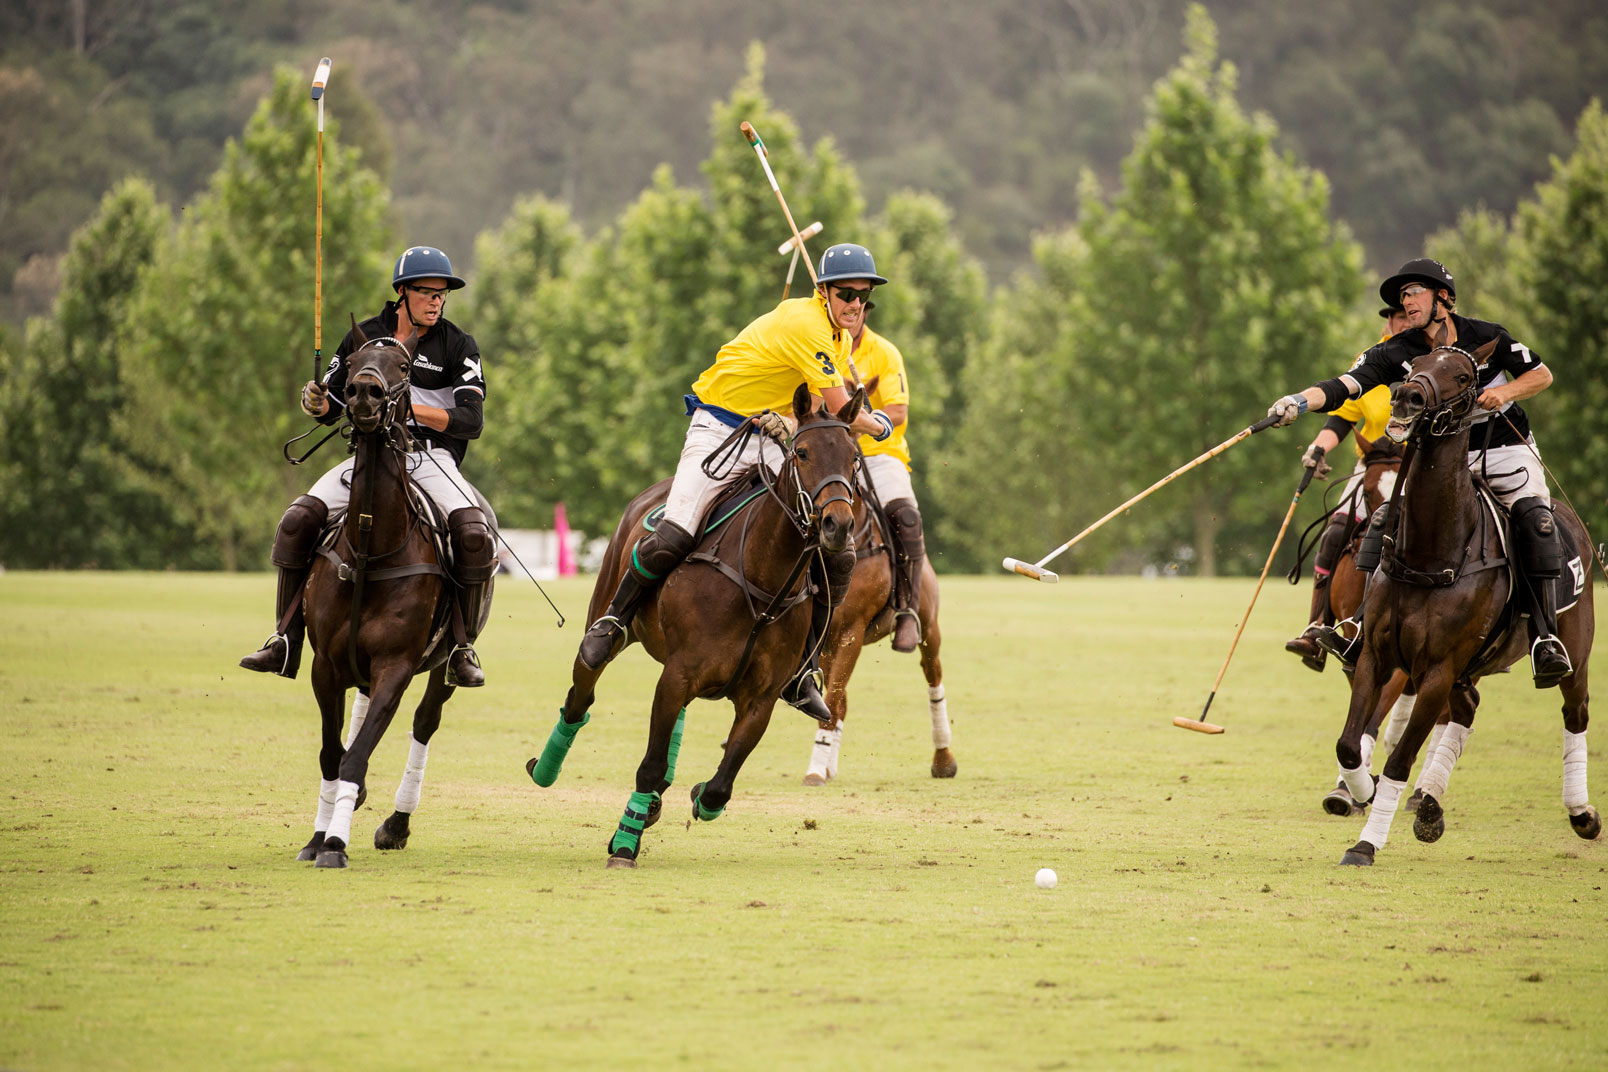 The Gold Cup at Sydney Polo Club